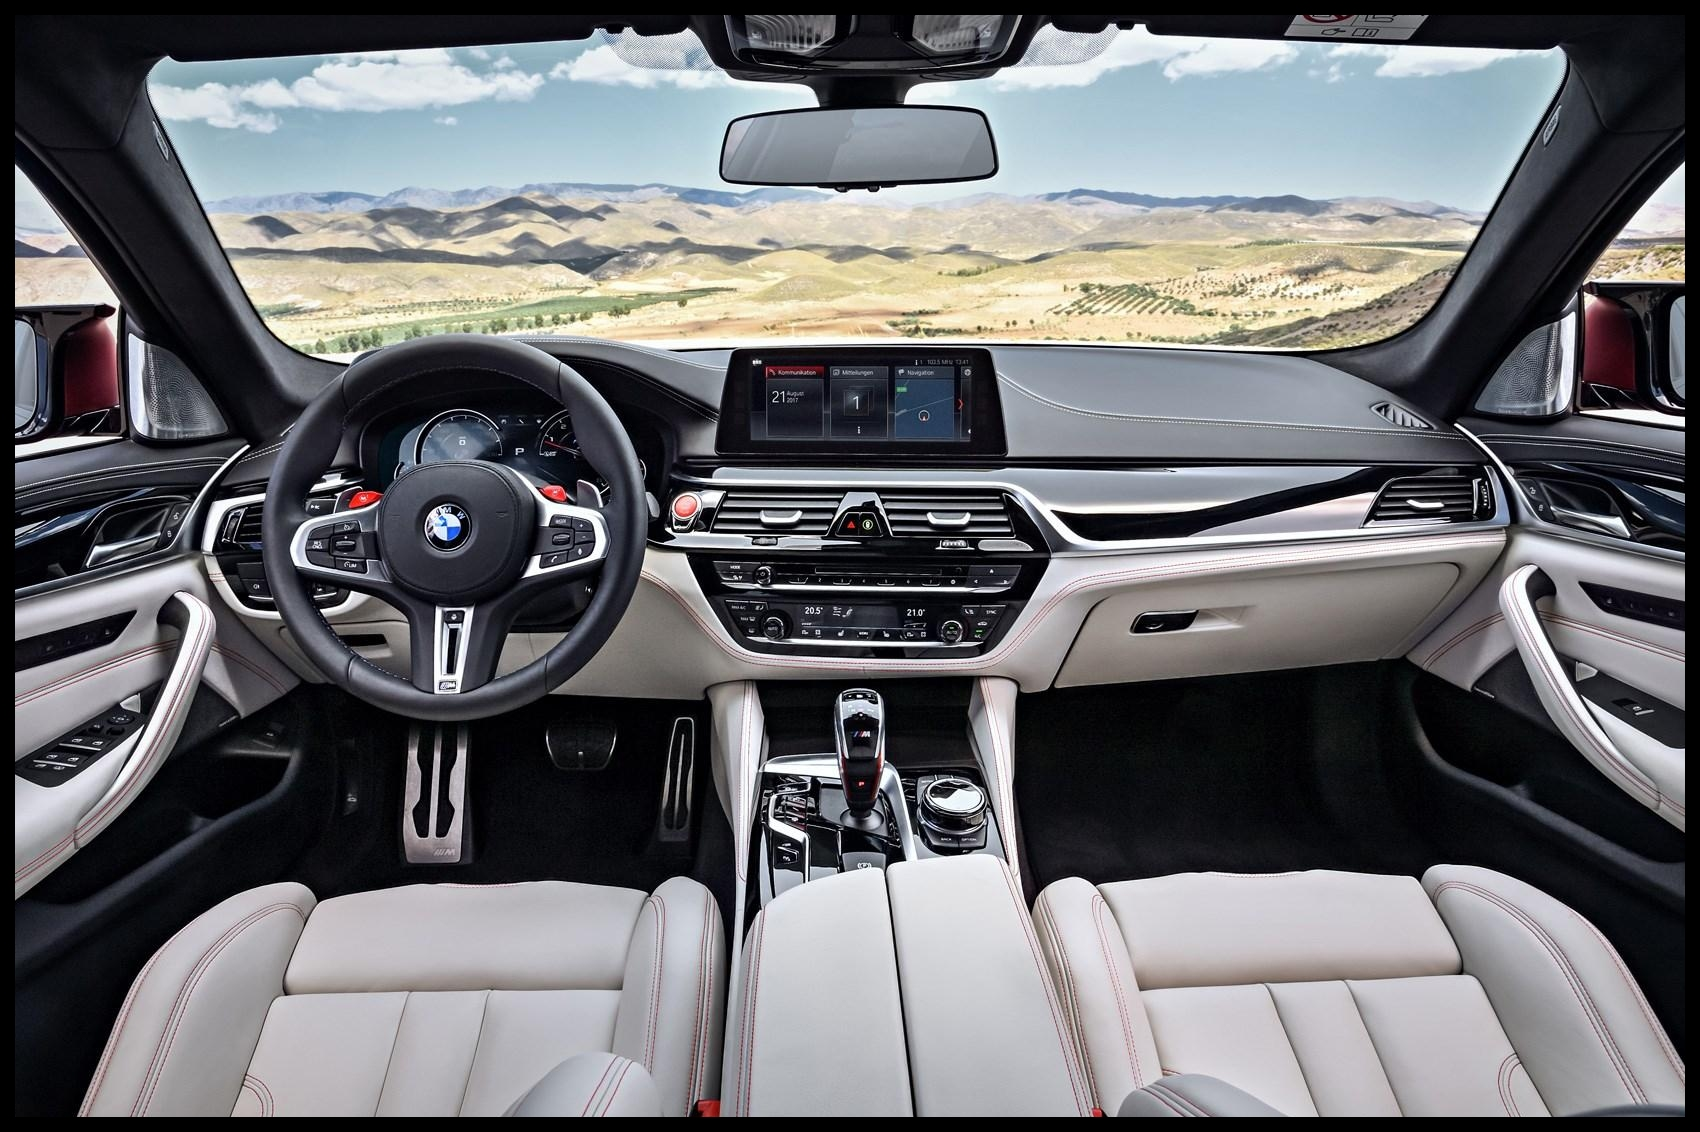 Take a BMW Car for a Test Drive at BMW of El Cajon